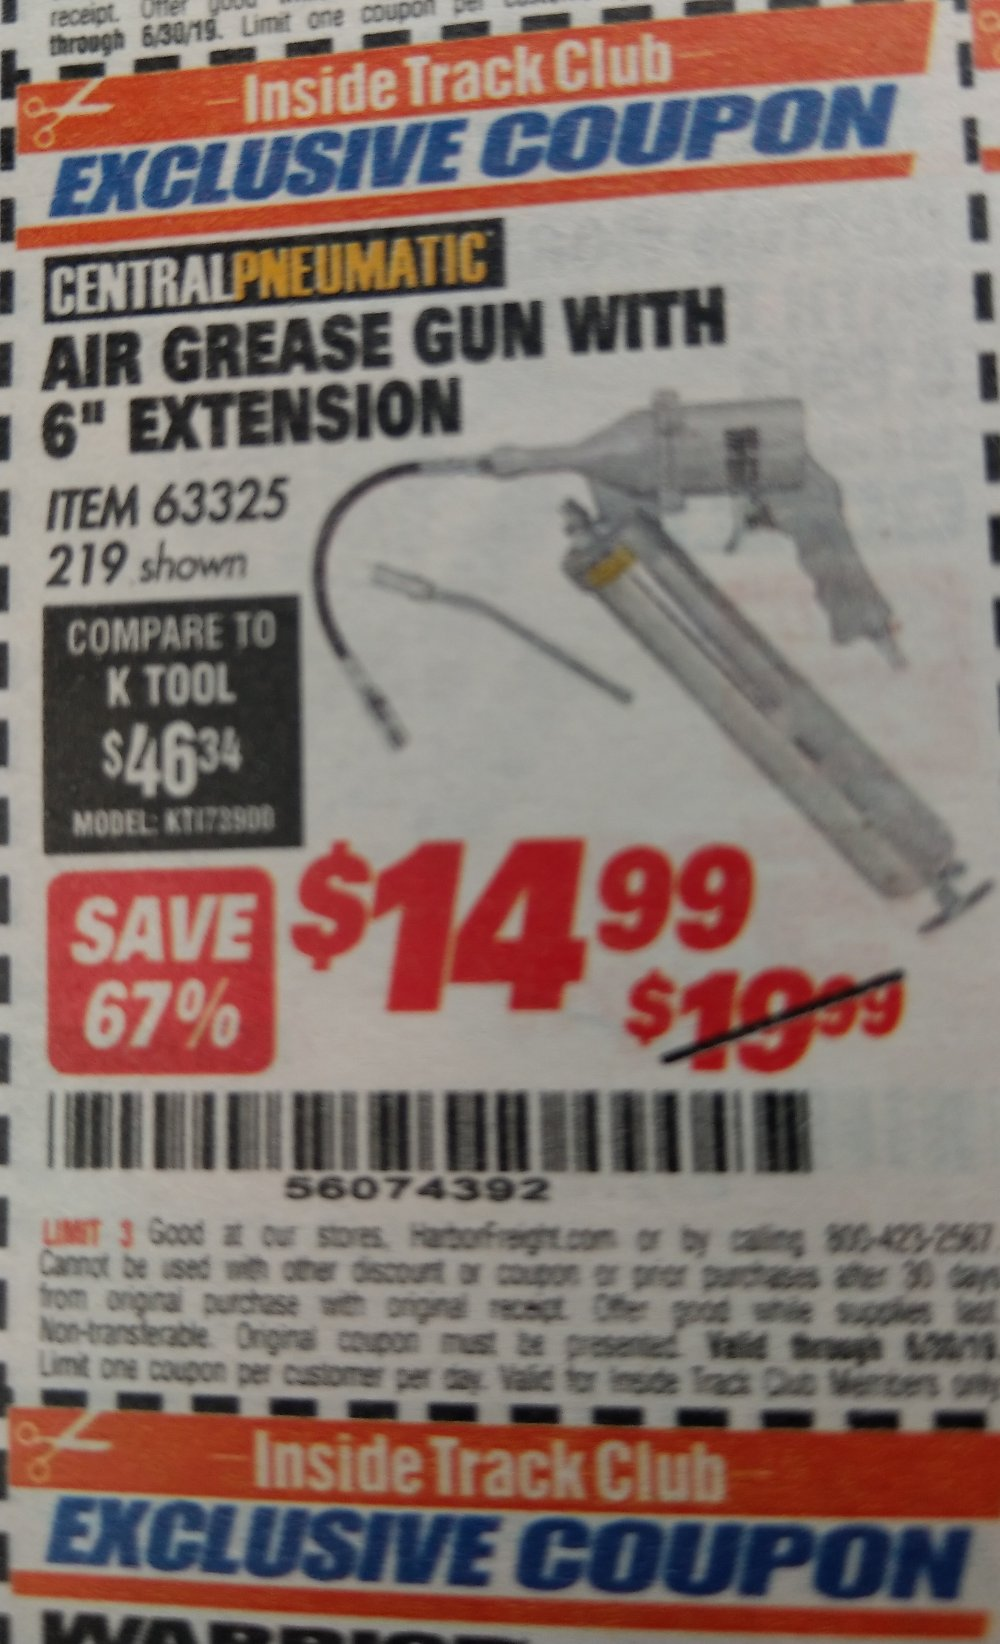 Harbor Freight Coupon, HF Coupons - 63325